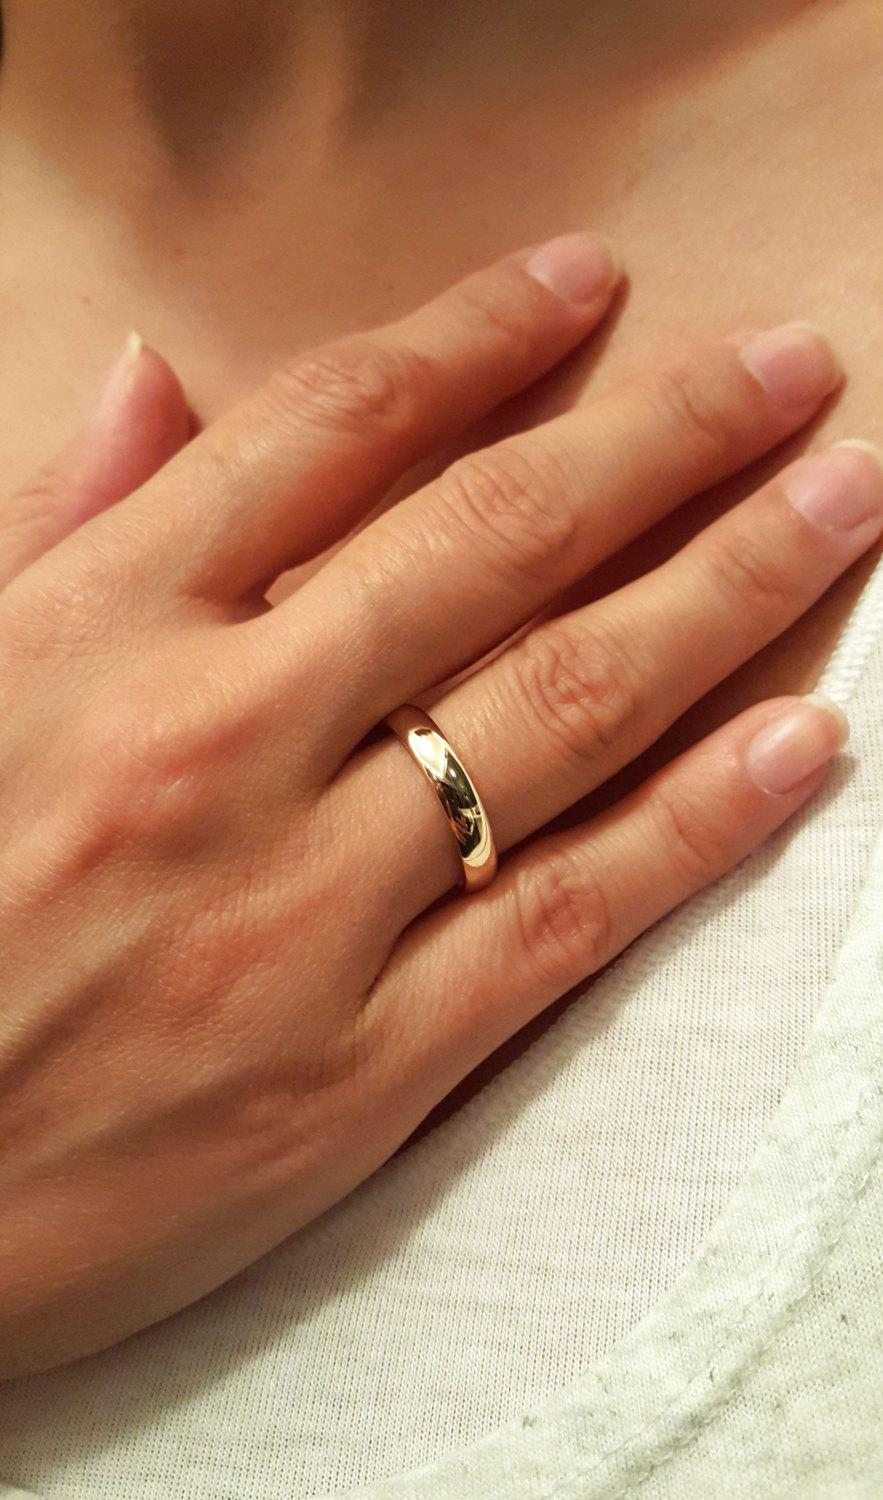 classy and men engagement womens gold bands classic ring his unisex media hers matching solid band wedding rings